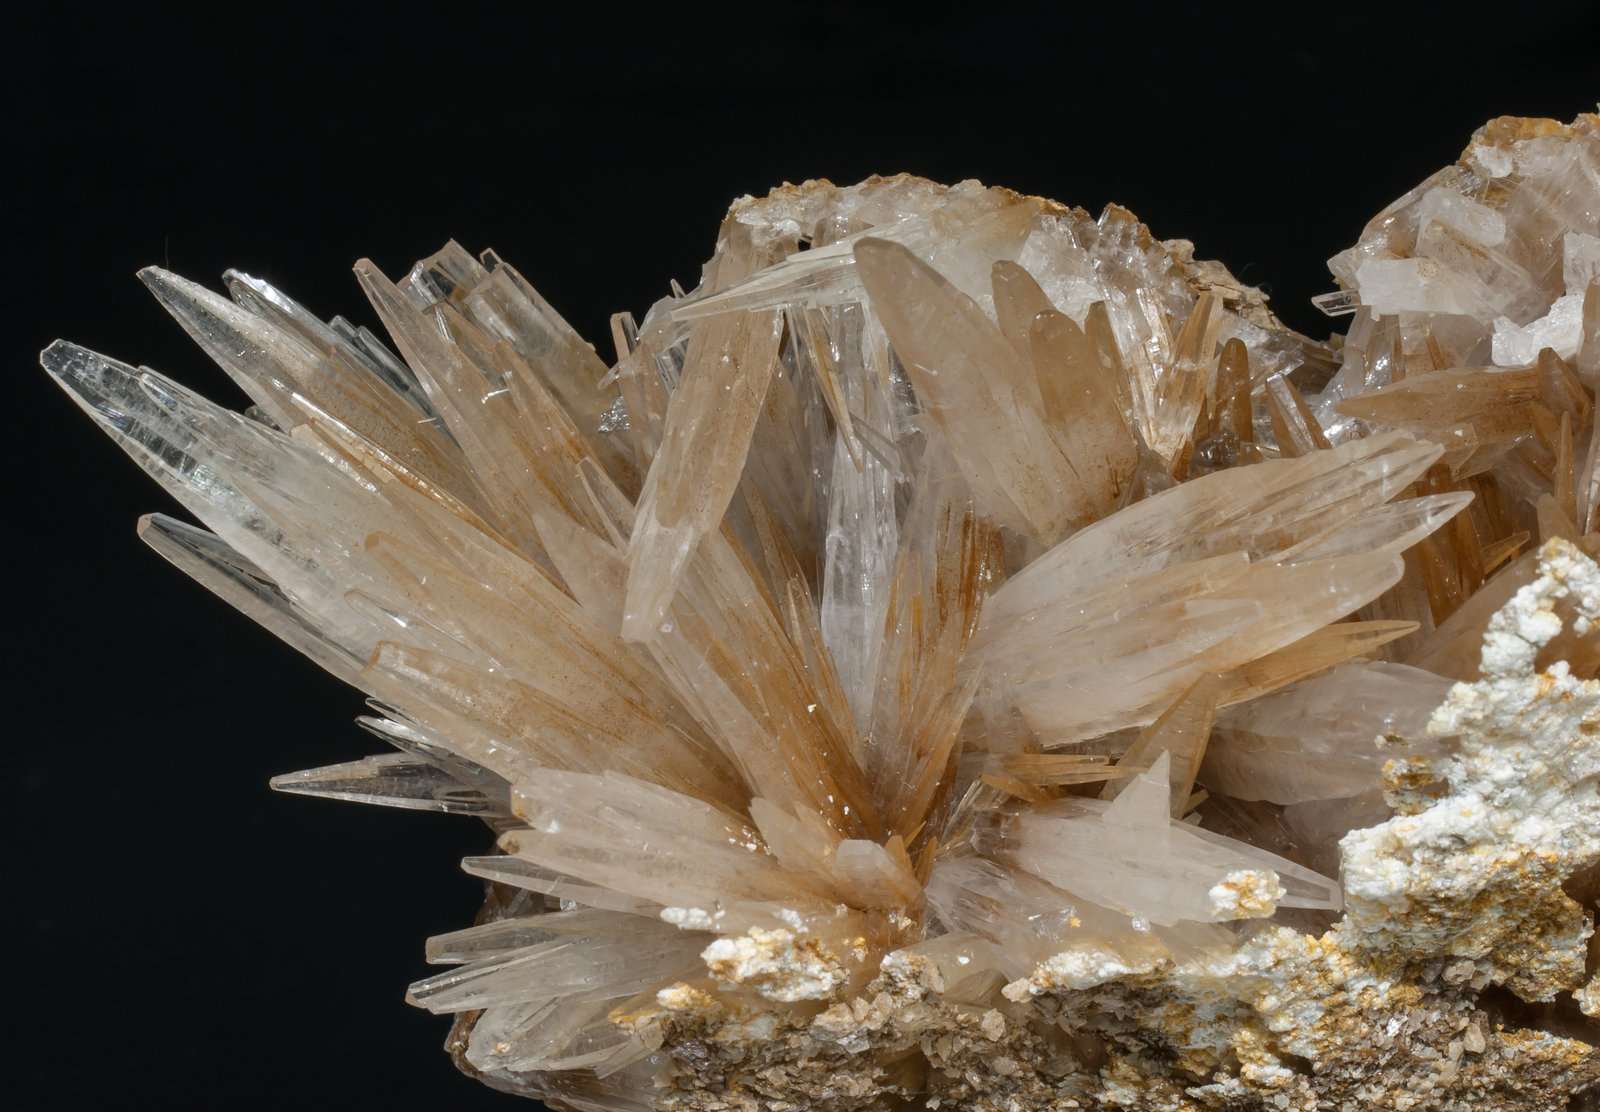 specimens/s_imagesAC4/Aragonite-MY96AC4d.jpg